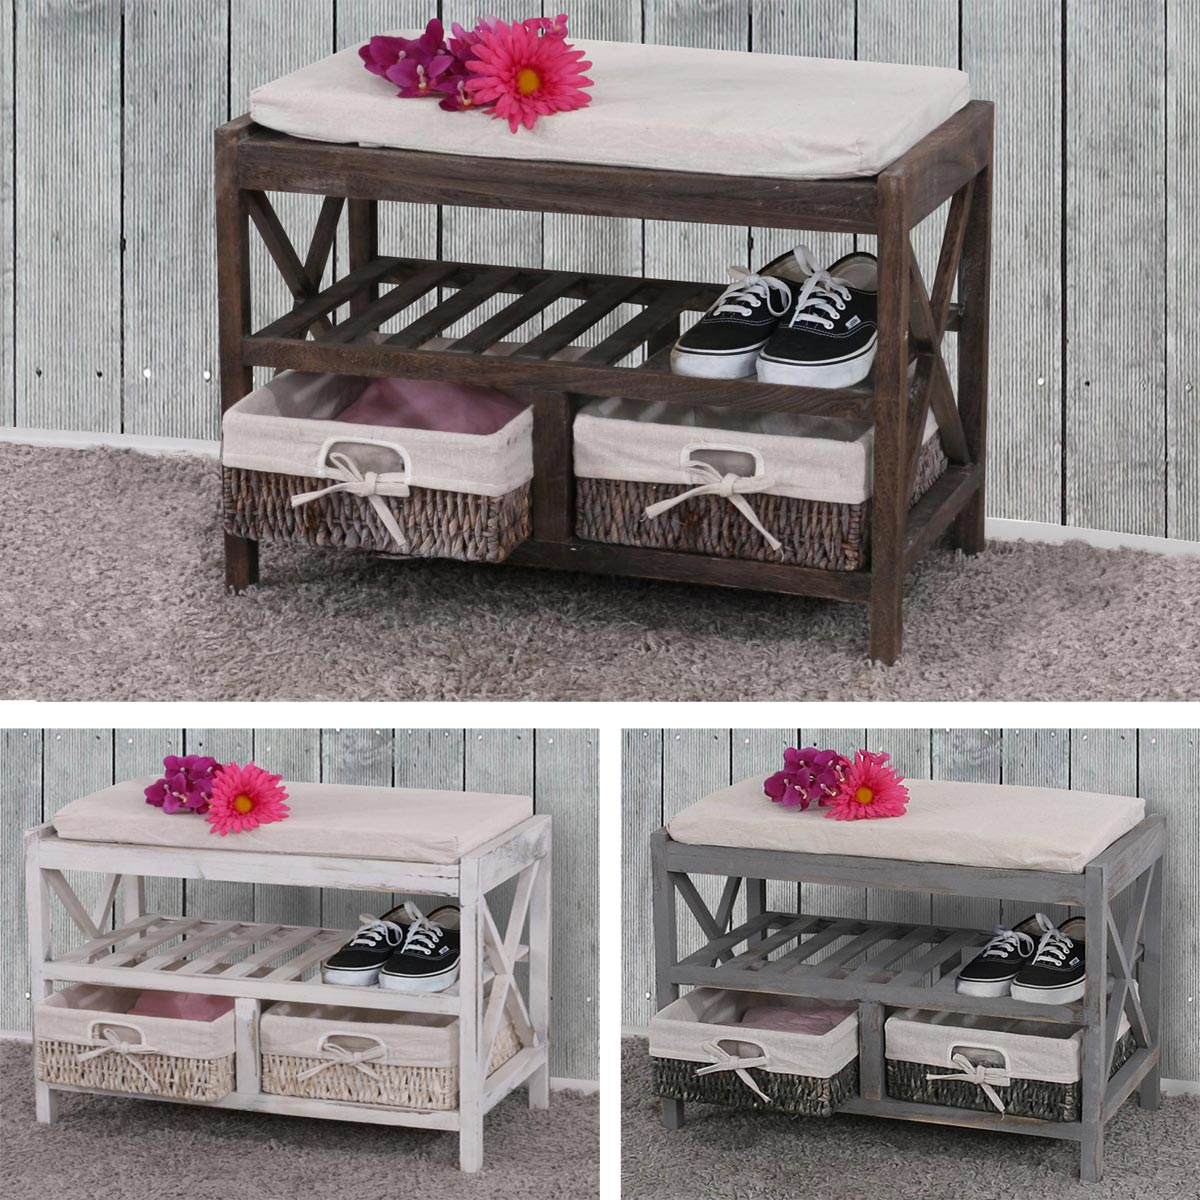 schuhregal sitzbank 45x65x34cm shabby look wei lackiert ebay. Black Bedroom Furniture Sets. Home Design Ideas